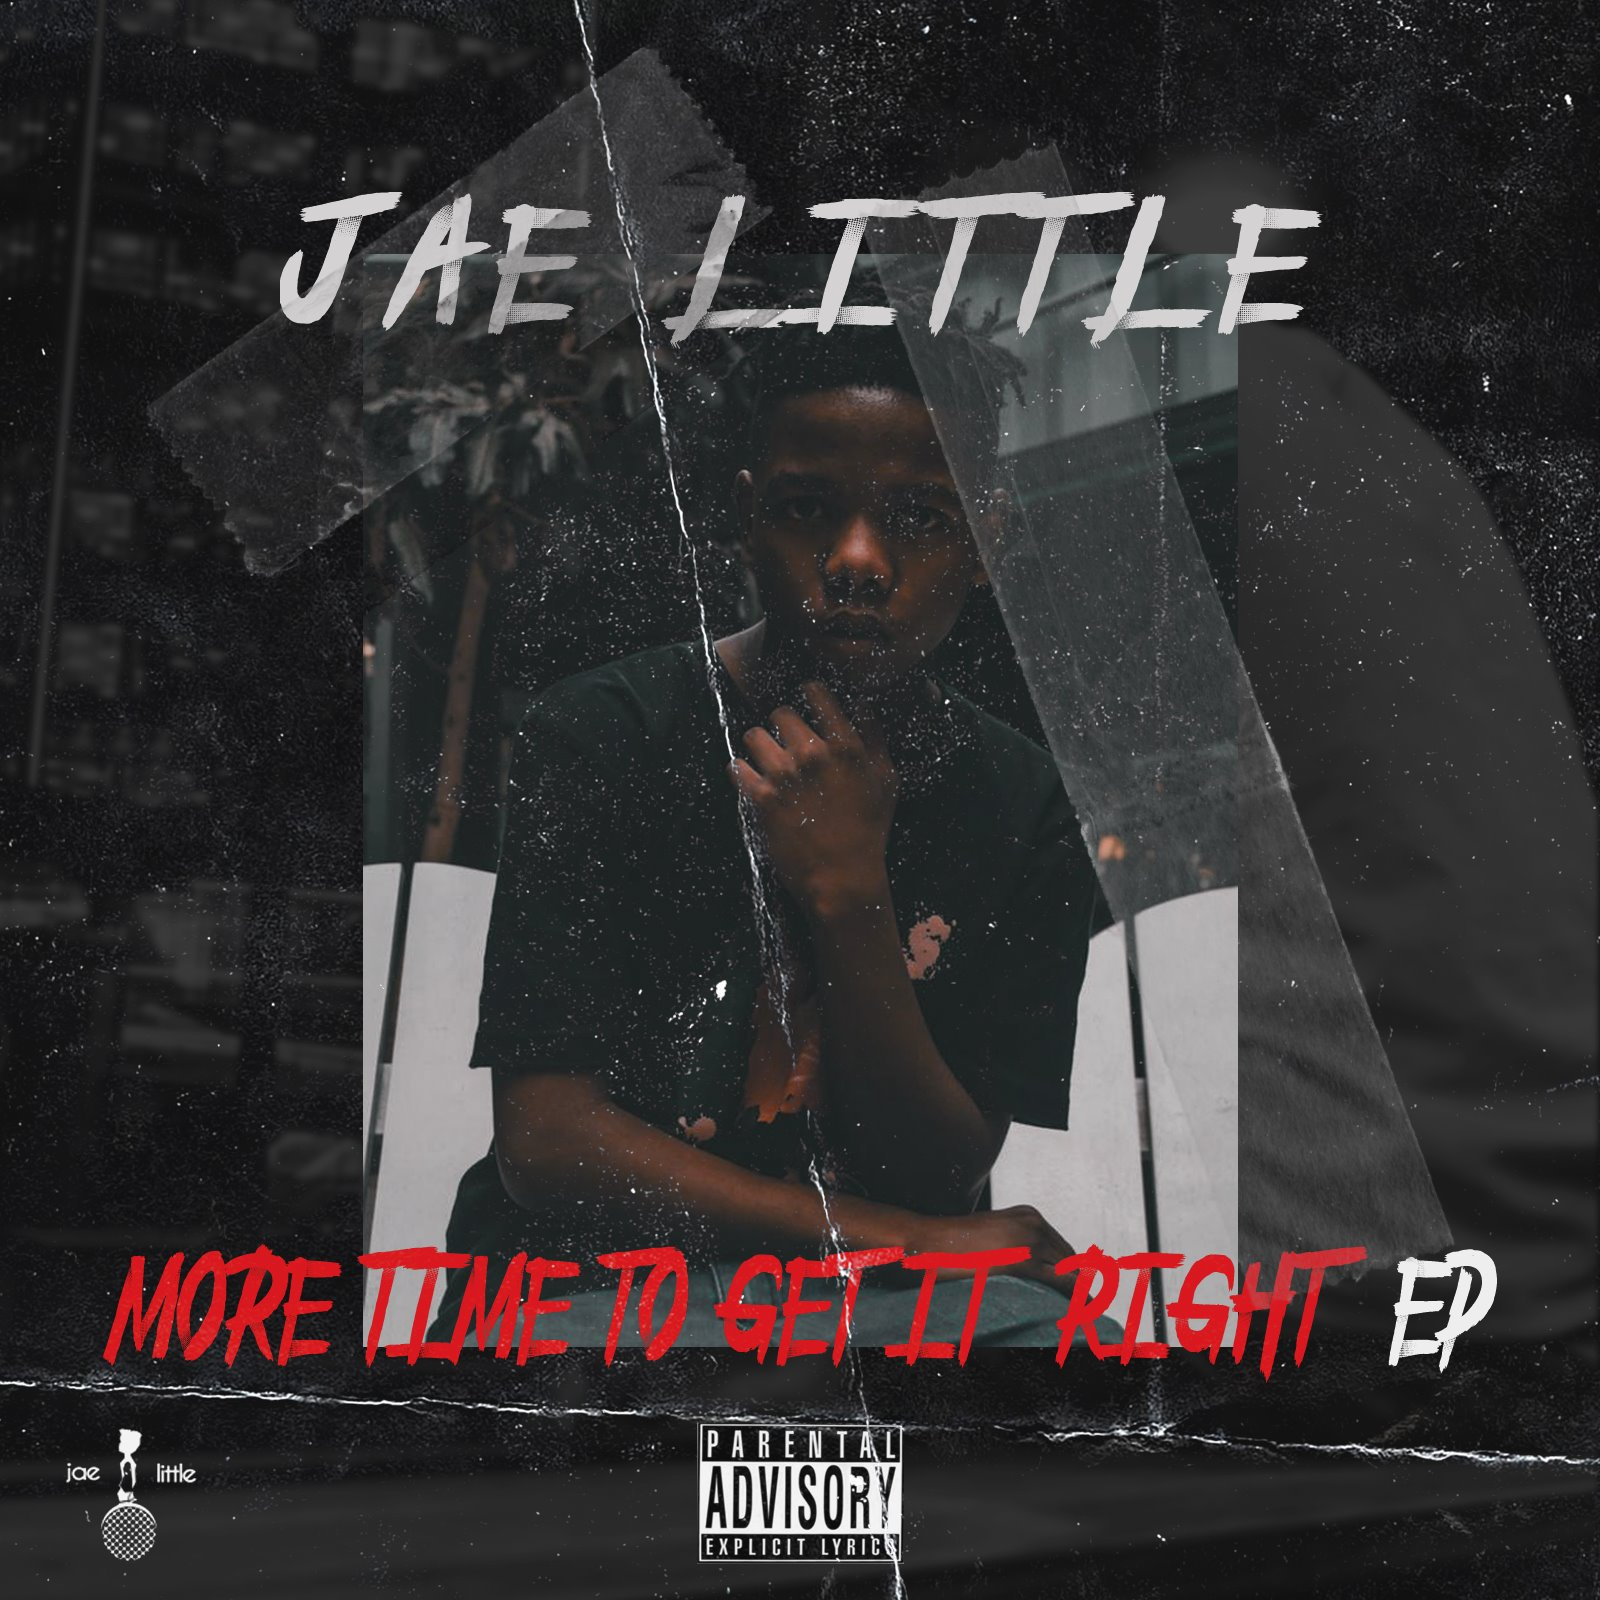 jae little Jae Little Just Dropped A New Ep 'More Time To Get It Right' [Listen] dc913ca07da0bb92097bddf44781c400c7d129e611c0d3ef4c6f4717598b2672